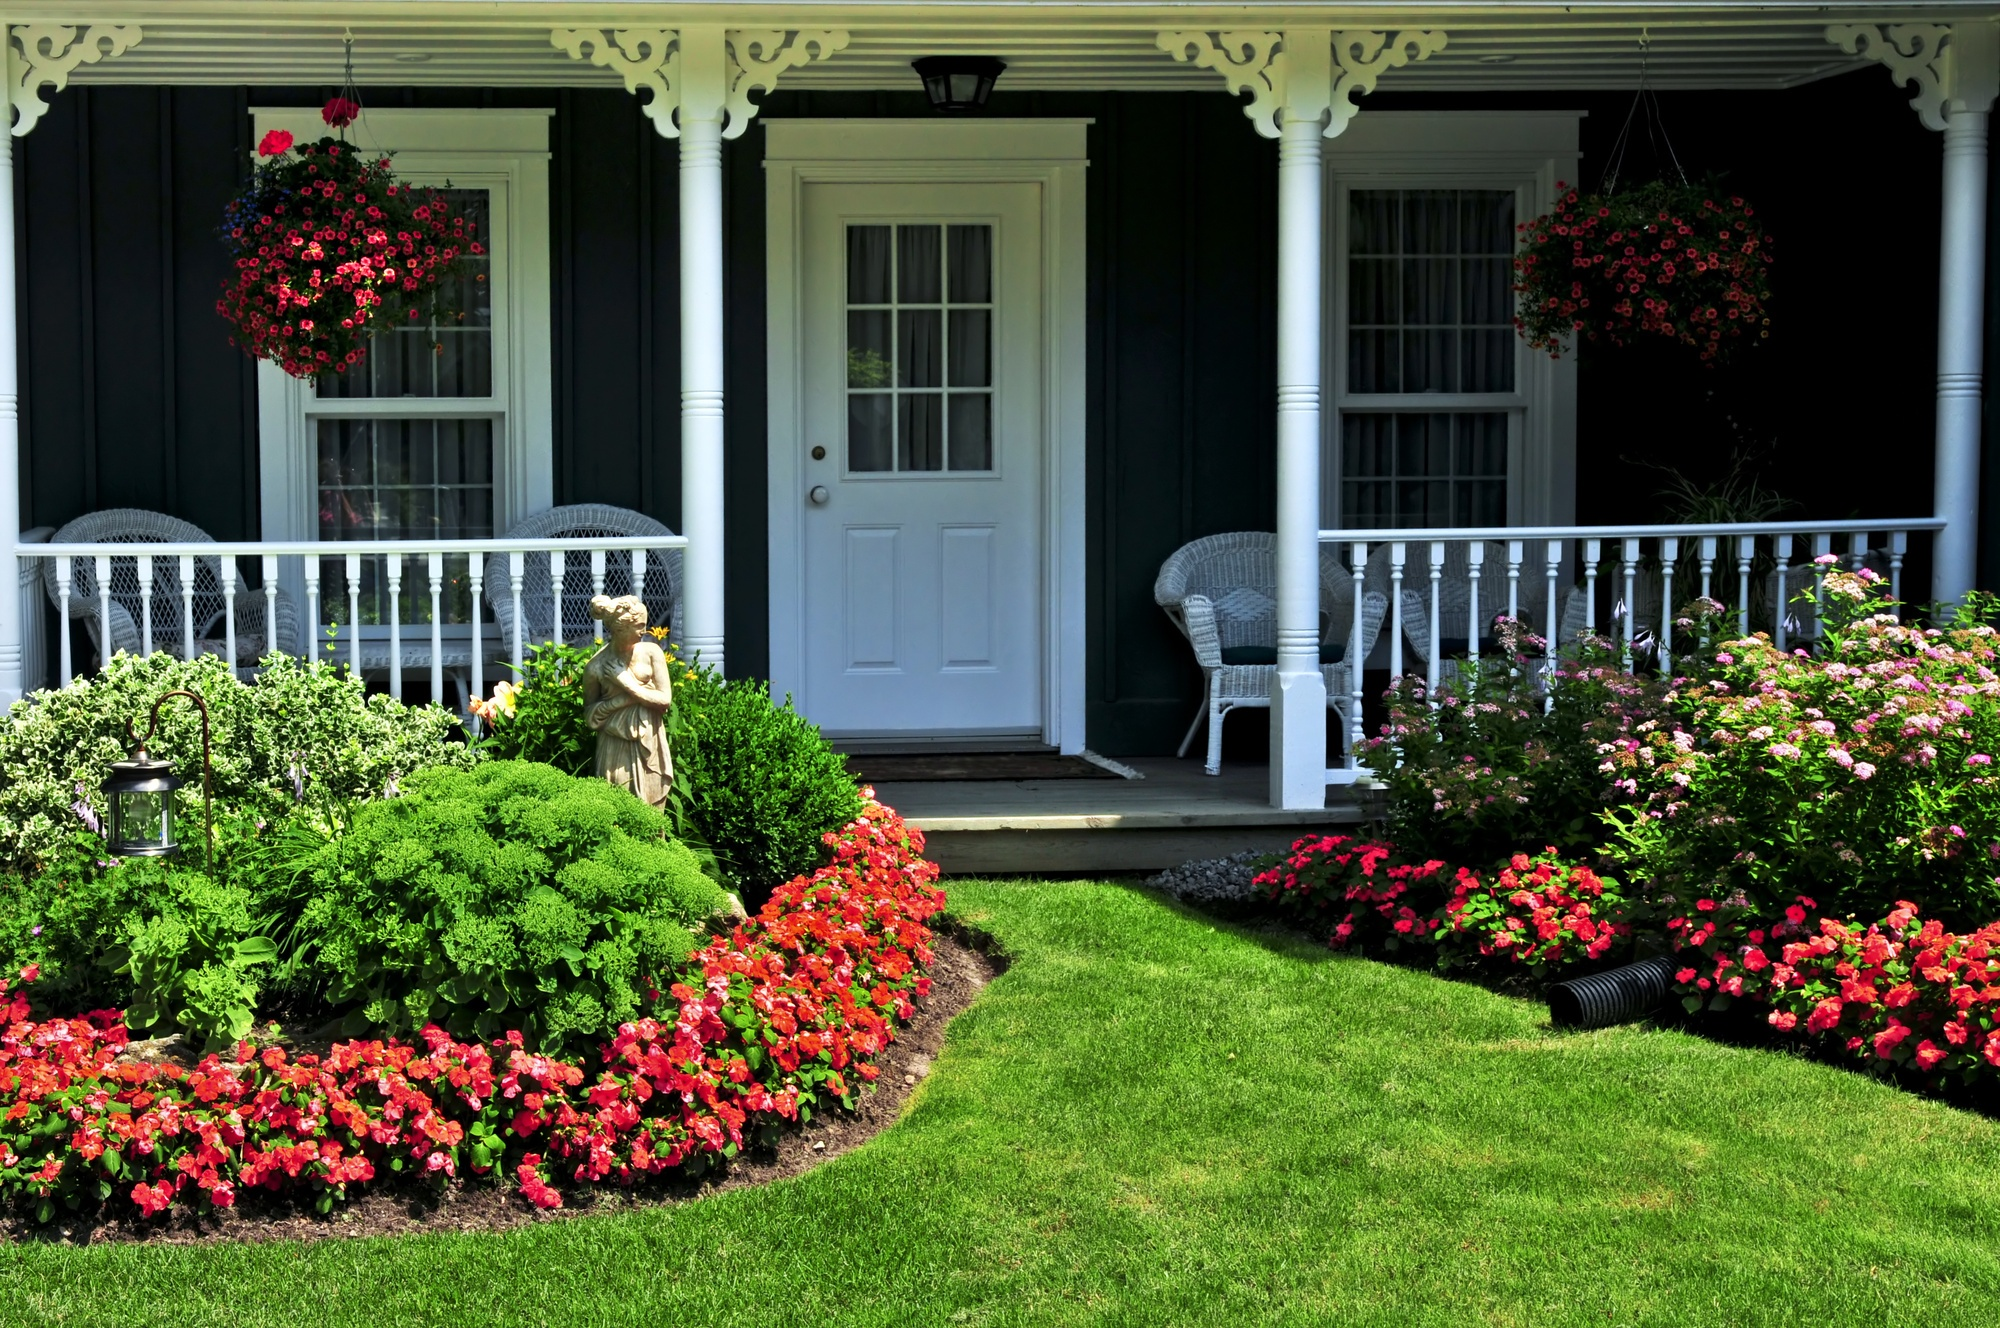 Summer Lawn Care 101: 8 Tips for Keeping Your Lawn Green and Healthy